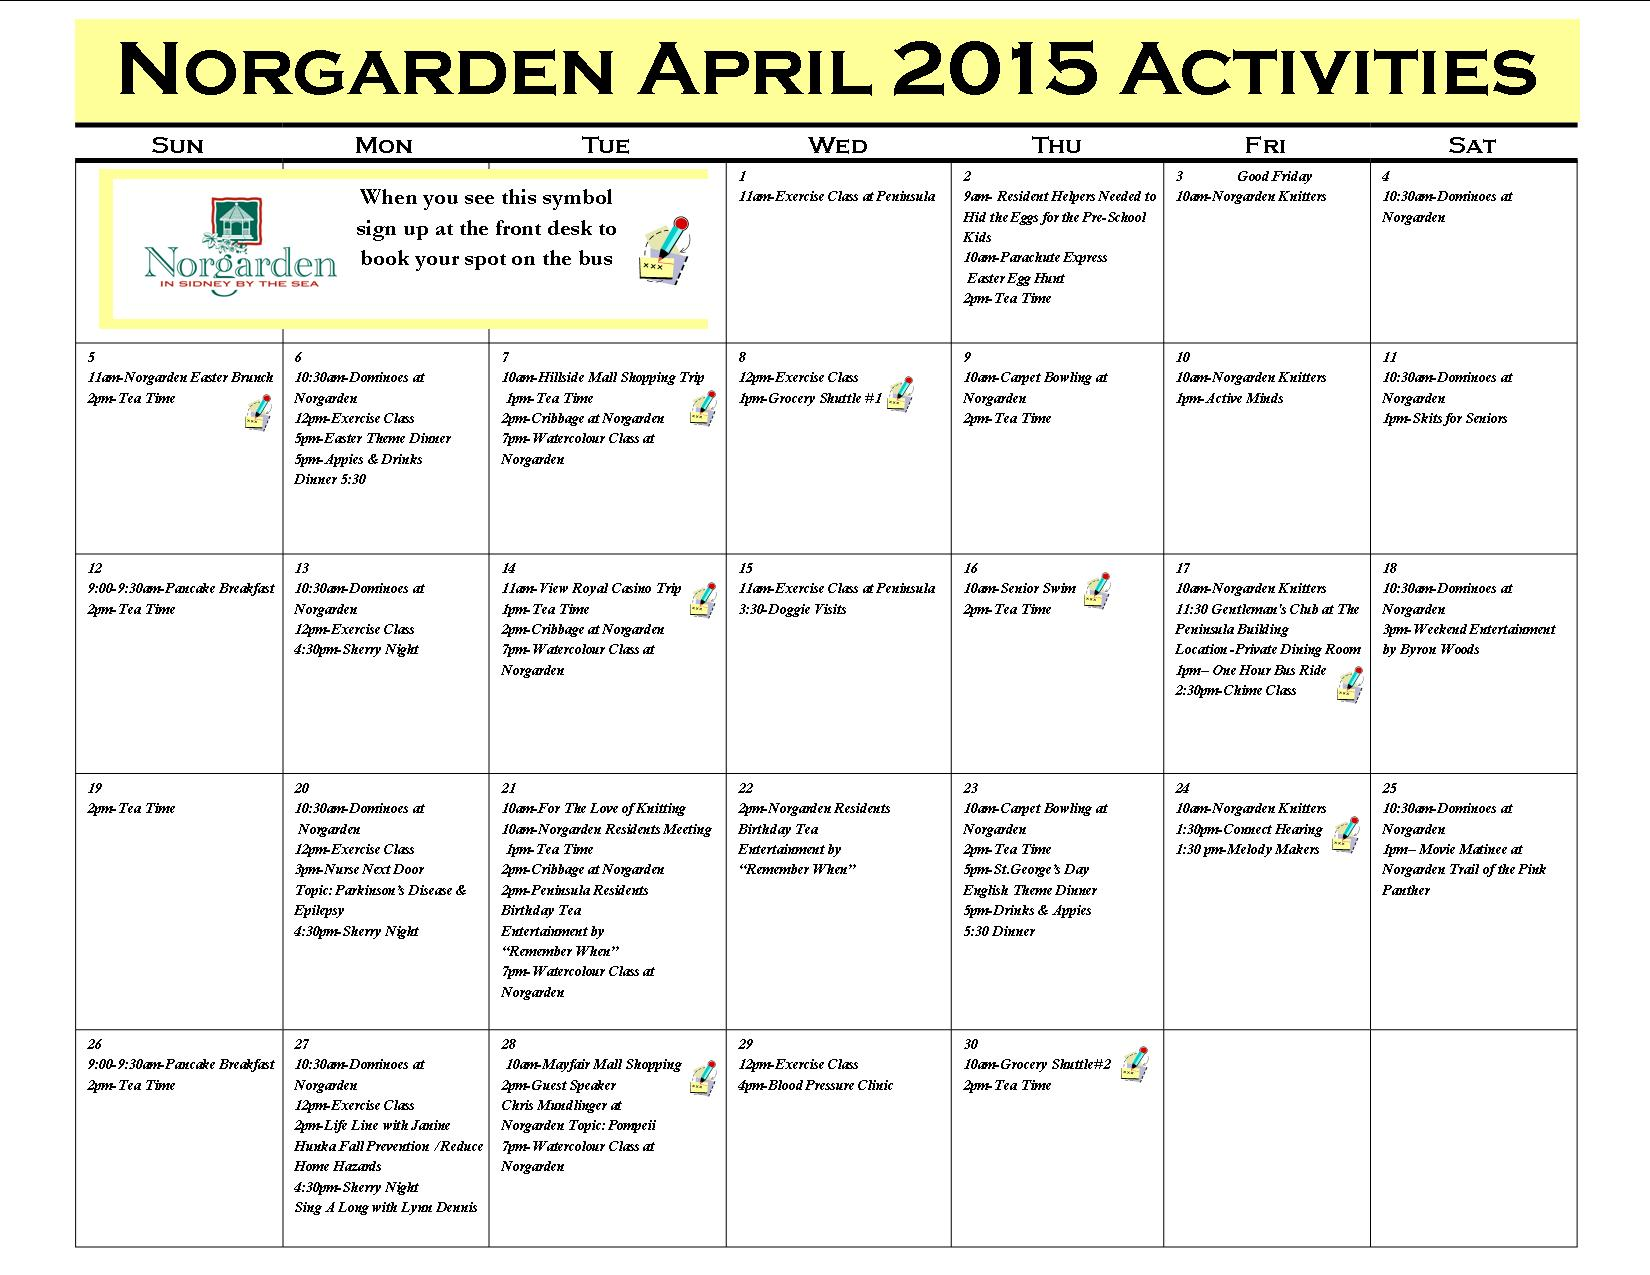 Norgarden -April 2015 For BLOG LAW